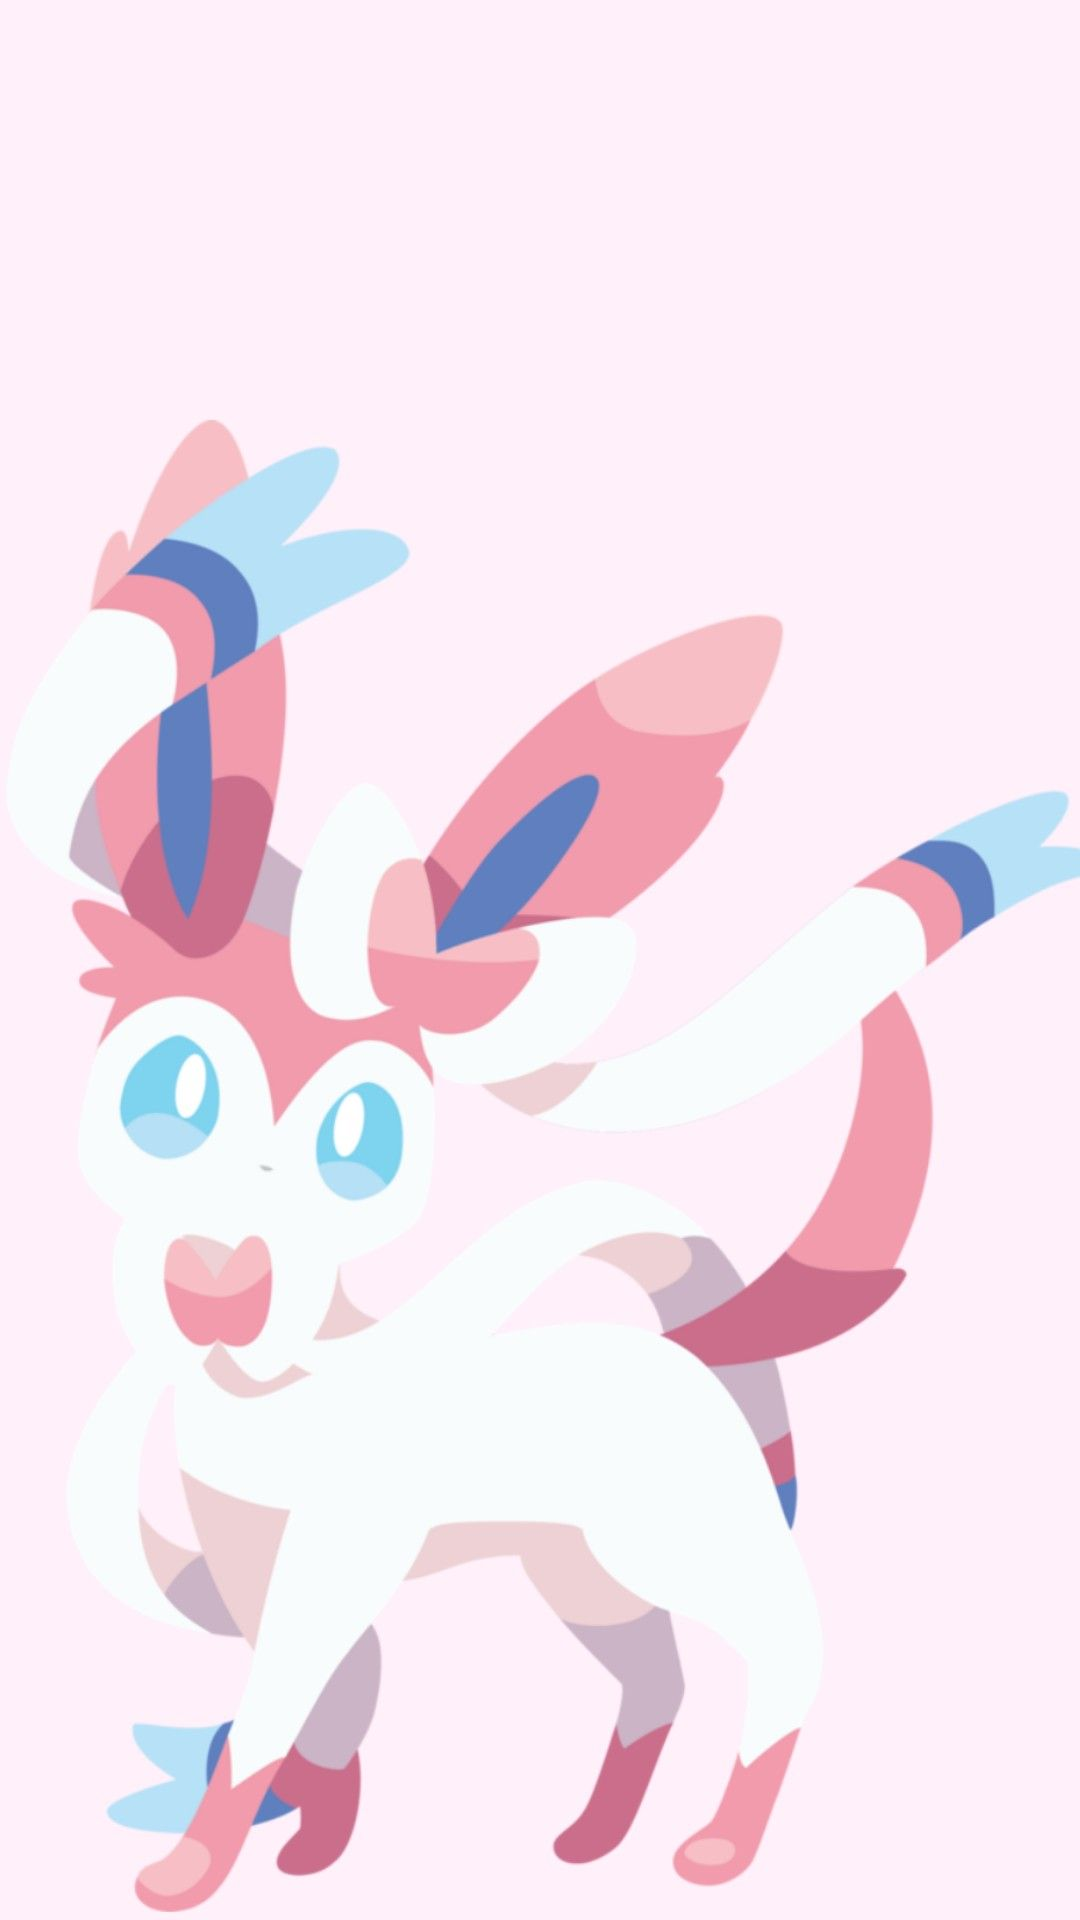 Sylveon Wallpapers - Top Free Sylveon Backgrounds ...